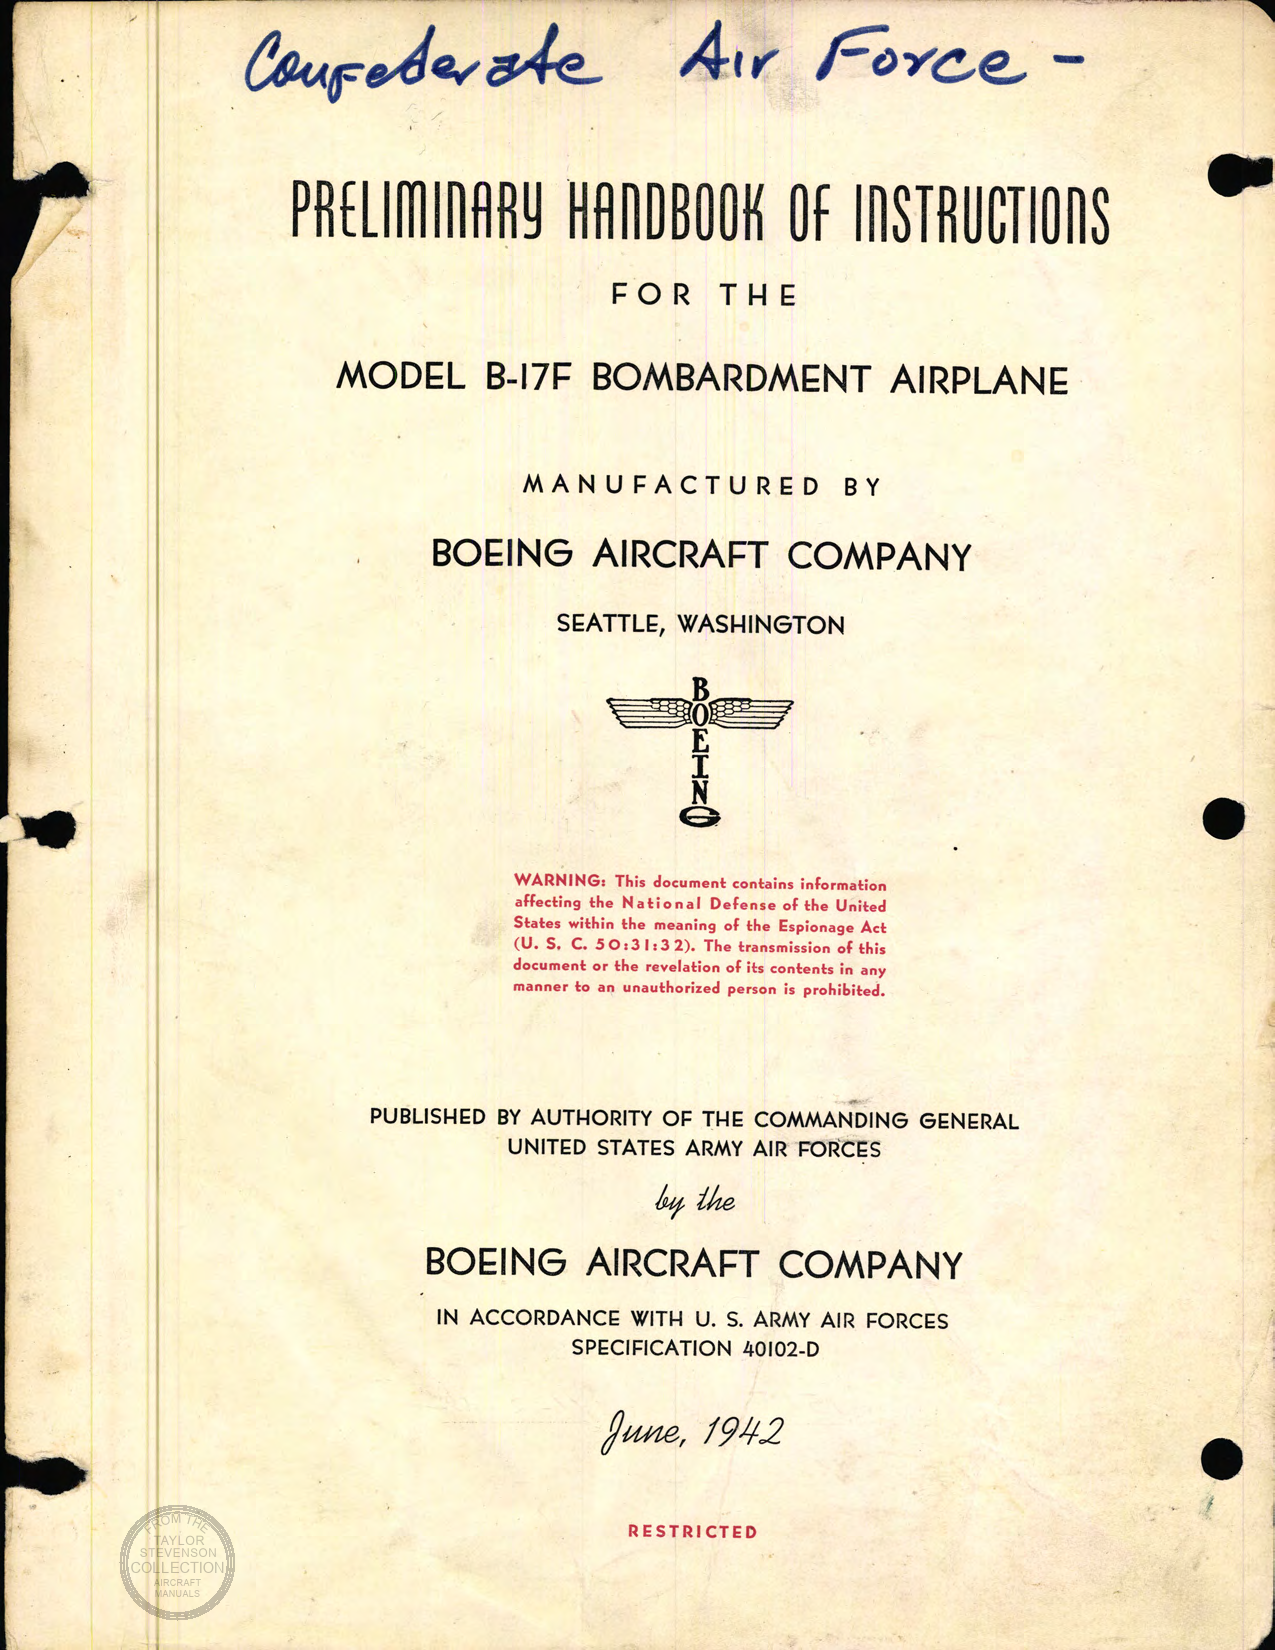 Sample page 1 from AirCorps Library document: Preliminary Handbook of Instructions for Model B-17F Bombardment Airplane